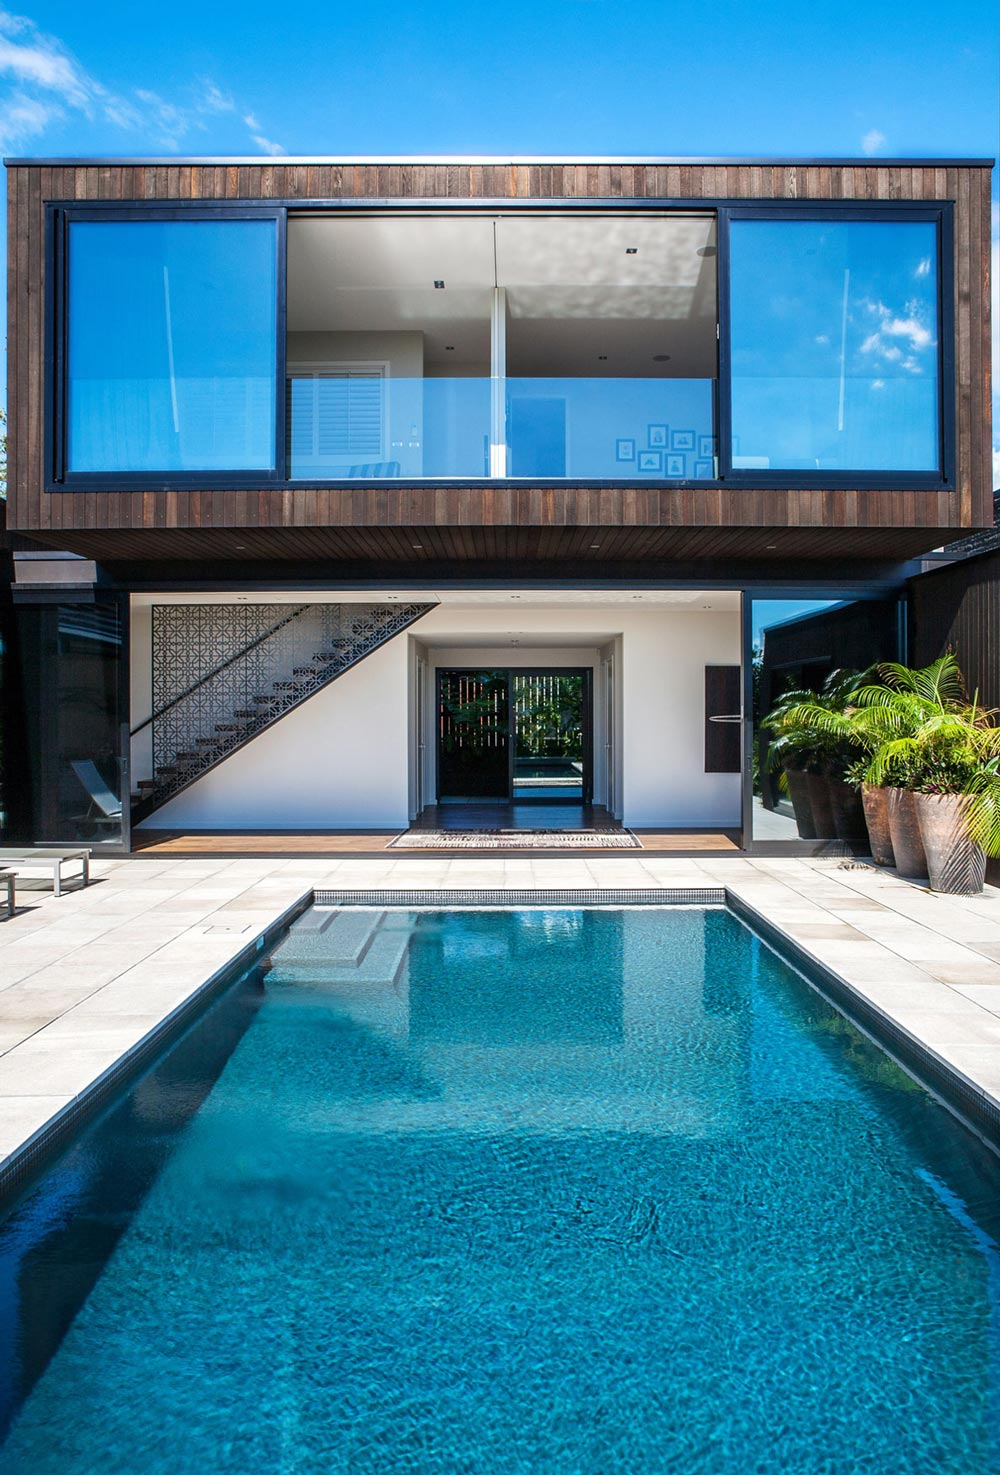 Swimming Pool, Terrace, Large Windows, Modern House in Auckland, New Zealand